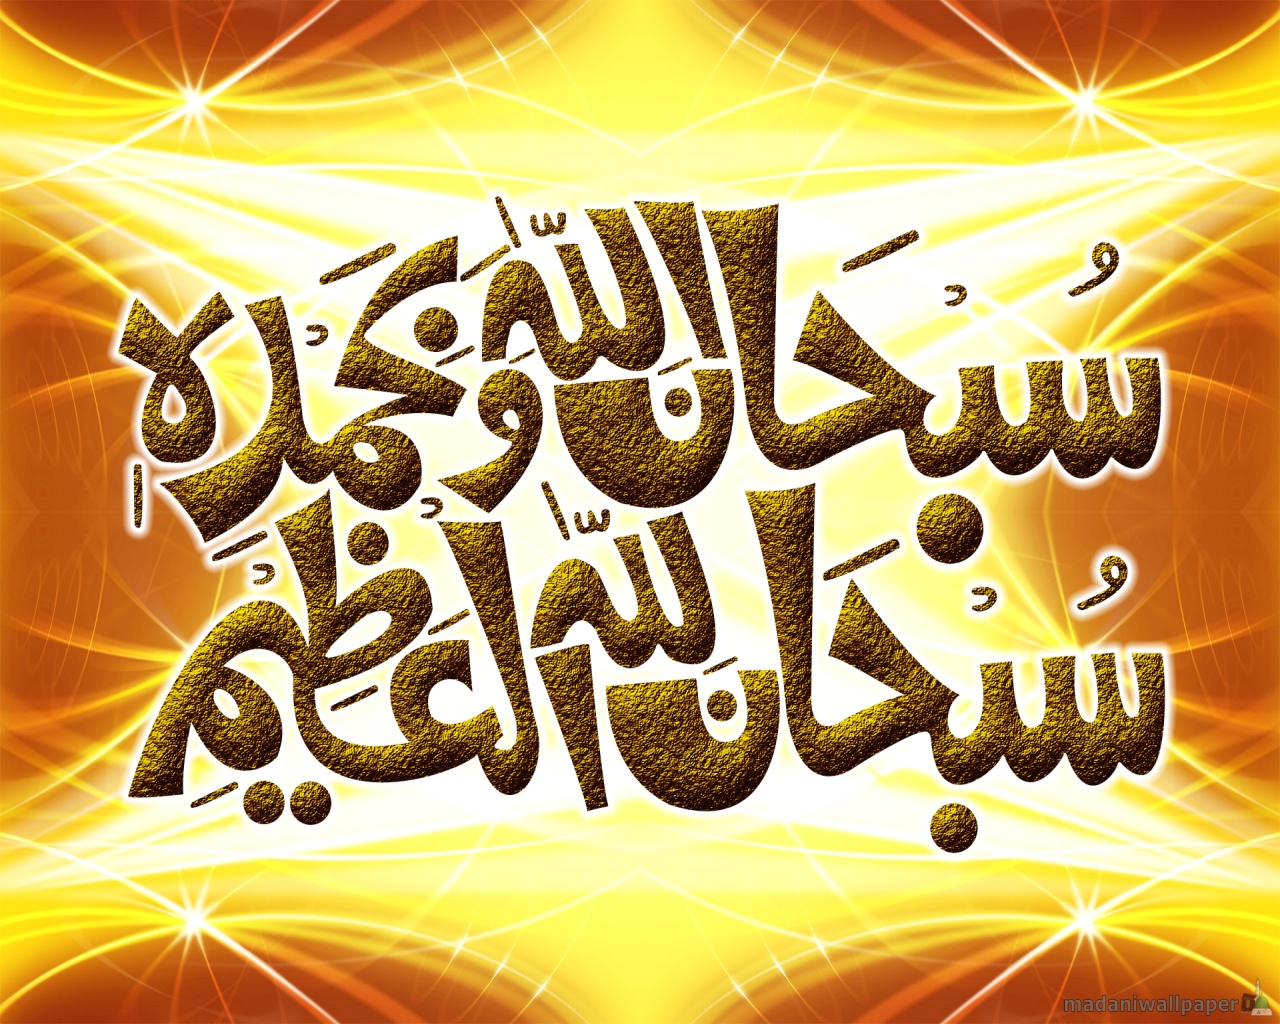 http://2.bp.blogspot.com/-eKOOCDWXTSE/URvgsHYaw1I/AAAAAAAAAIY/xwQbXHzLSr0/s1600/islamic_high_resolution_widescreen_wallpaper_2012-1280x1024.jpg